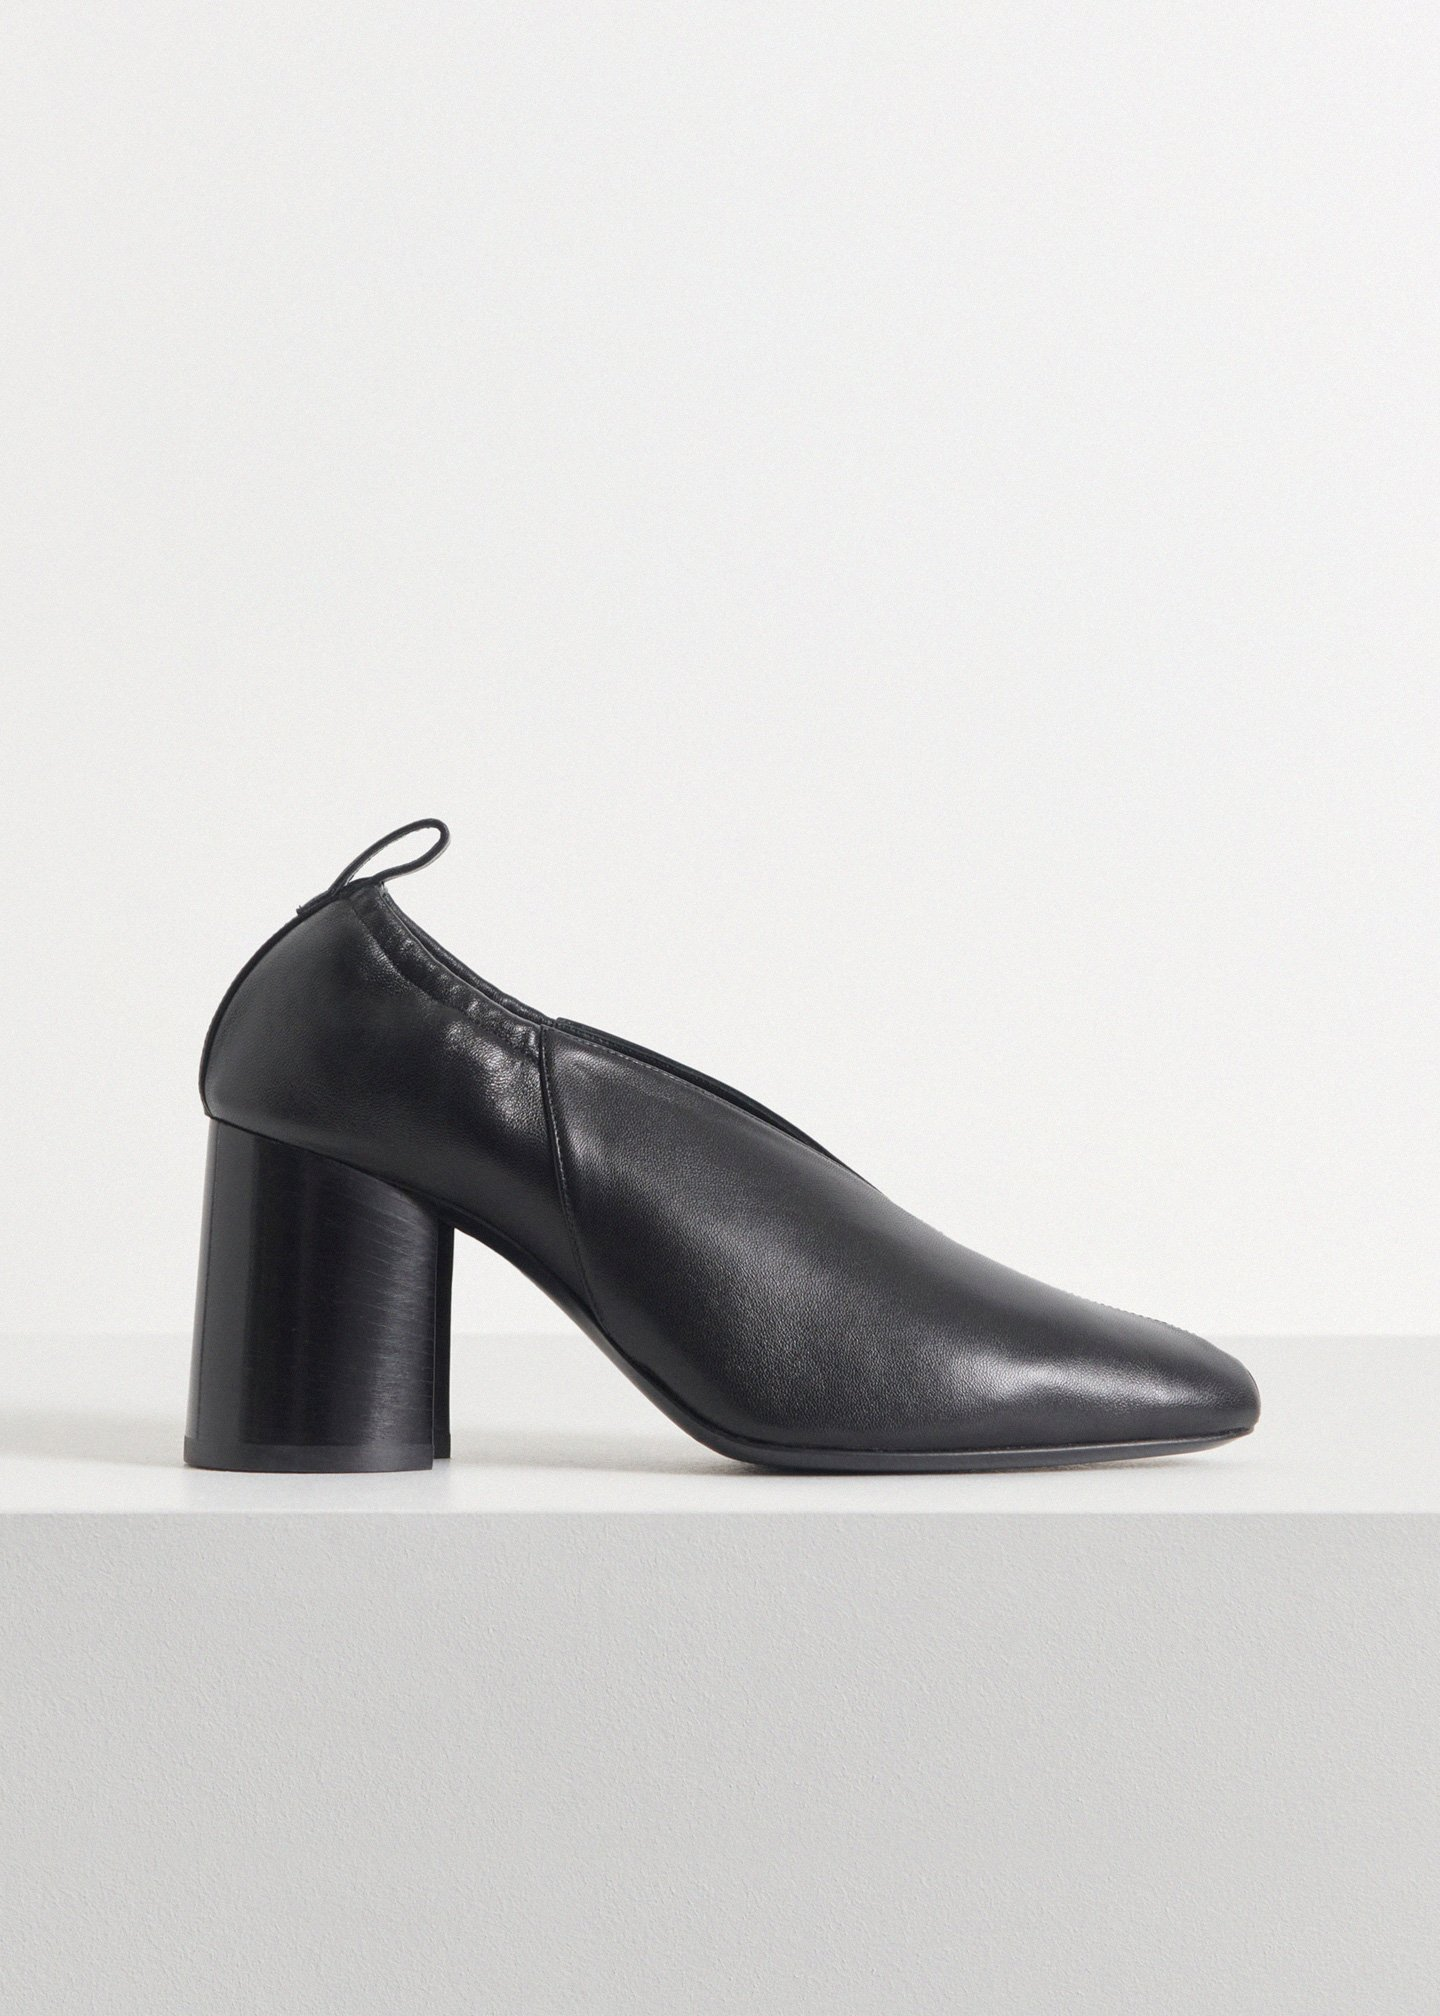 Slit Heel in Smooth Leather - Ivory in Black by Co Collections